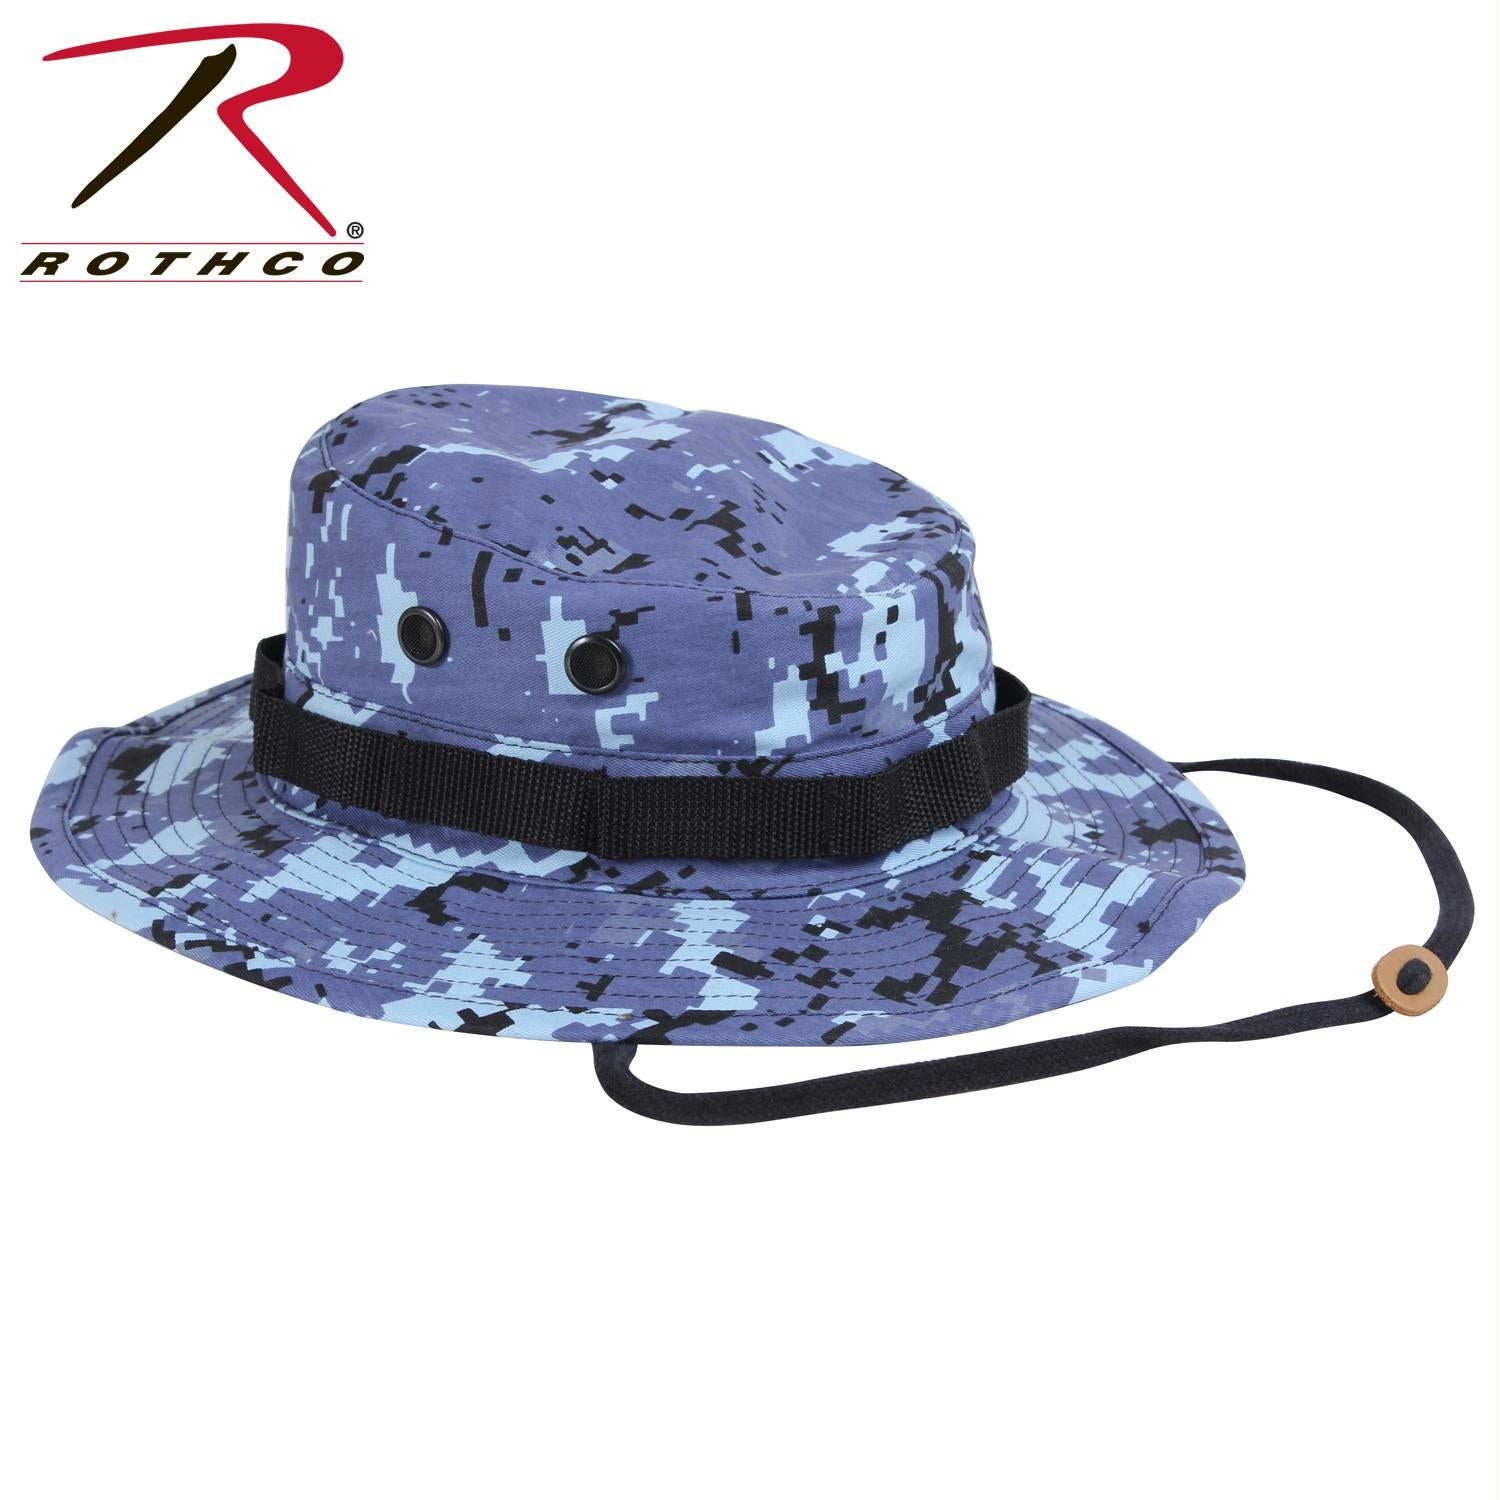 Rothco Digital Camo Boonie Hat - Sky Blue Digital Camo / 7 1/4